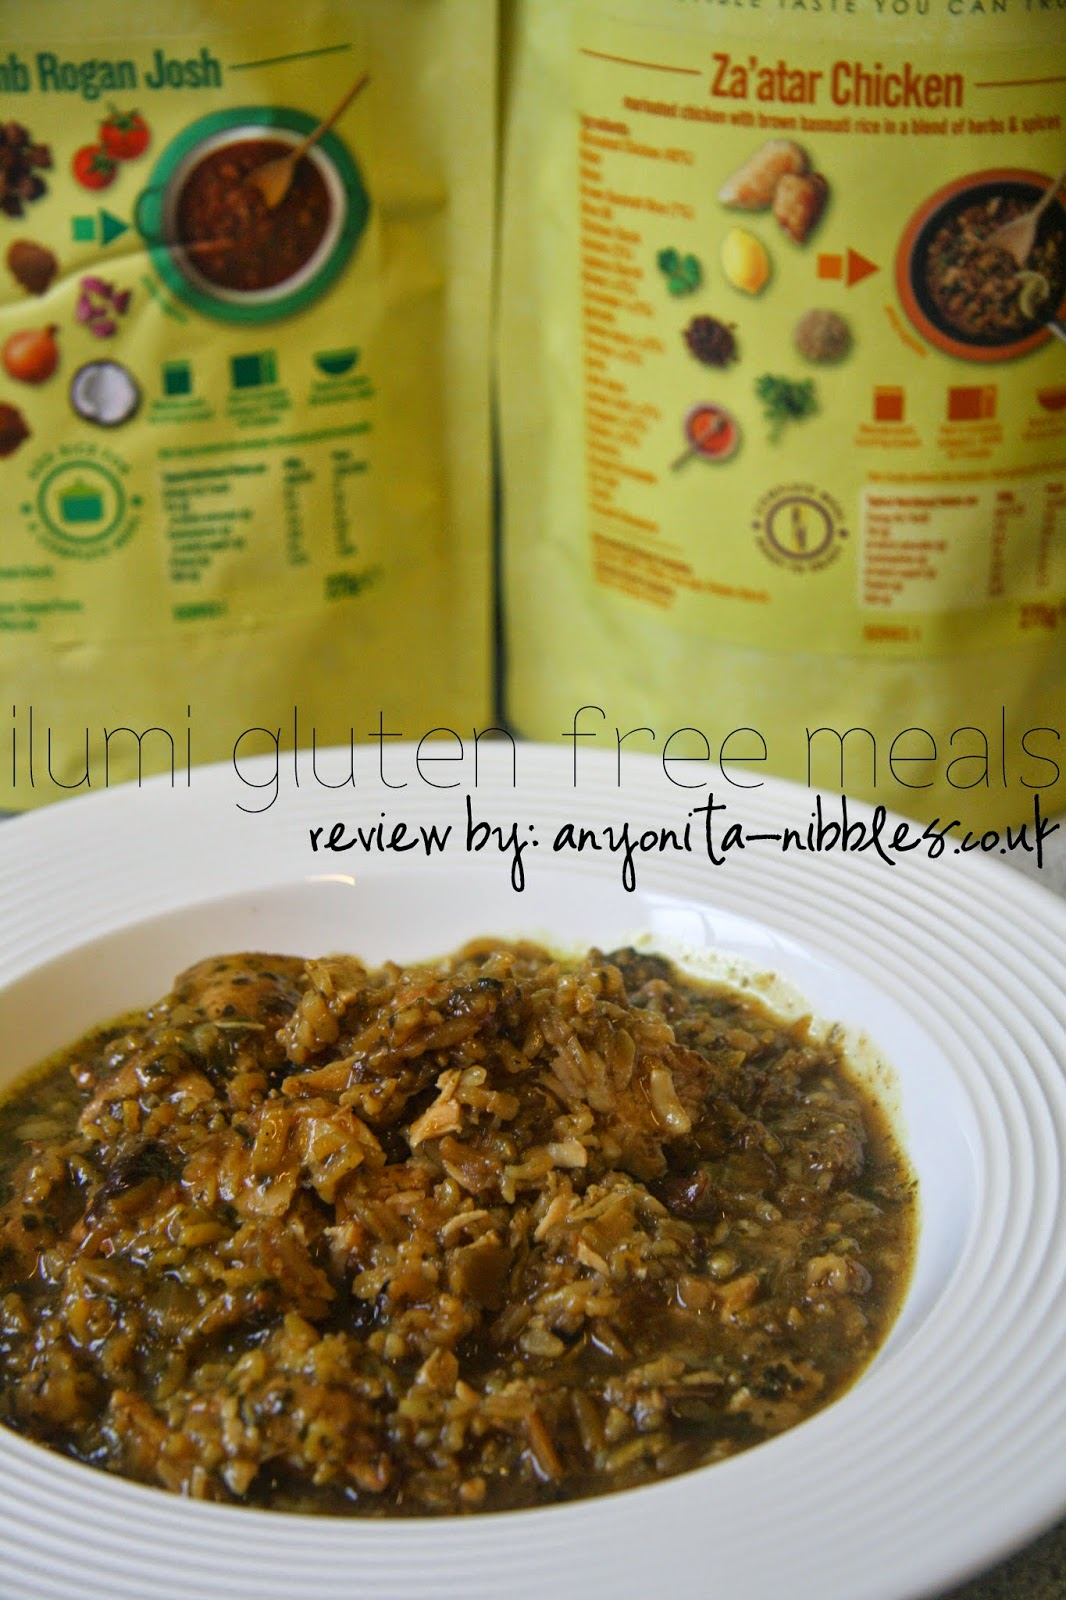 Ilumi Gluten Free Meals Review from Anyonita-nibbles.co.uk